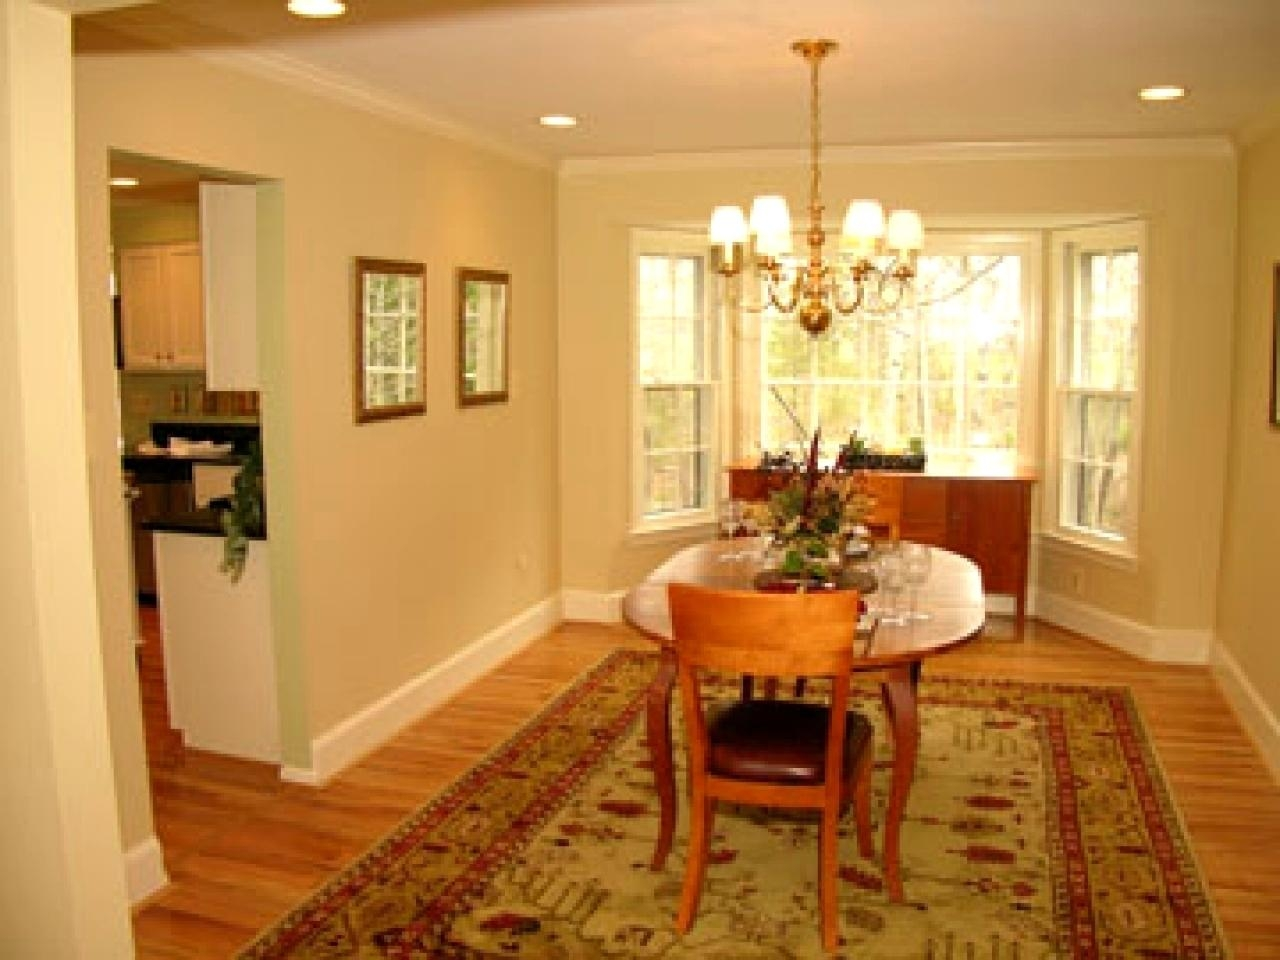 Phenomenal Recessed Lighting In Dining Room Recessed Lighting In